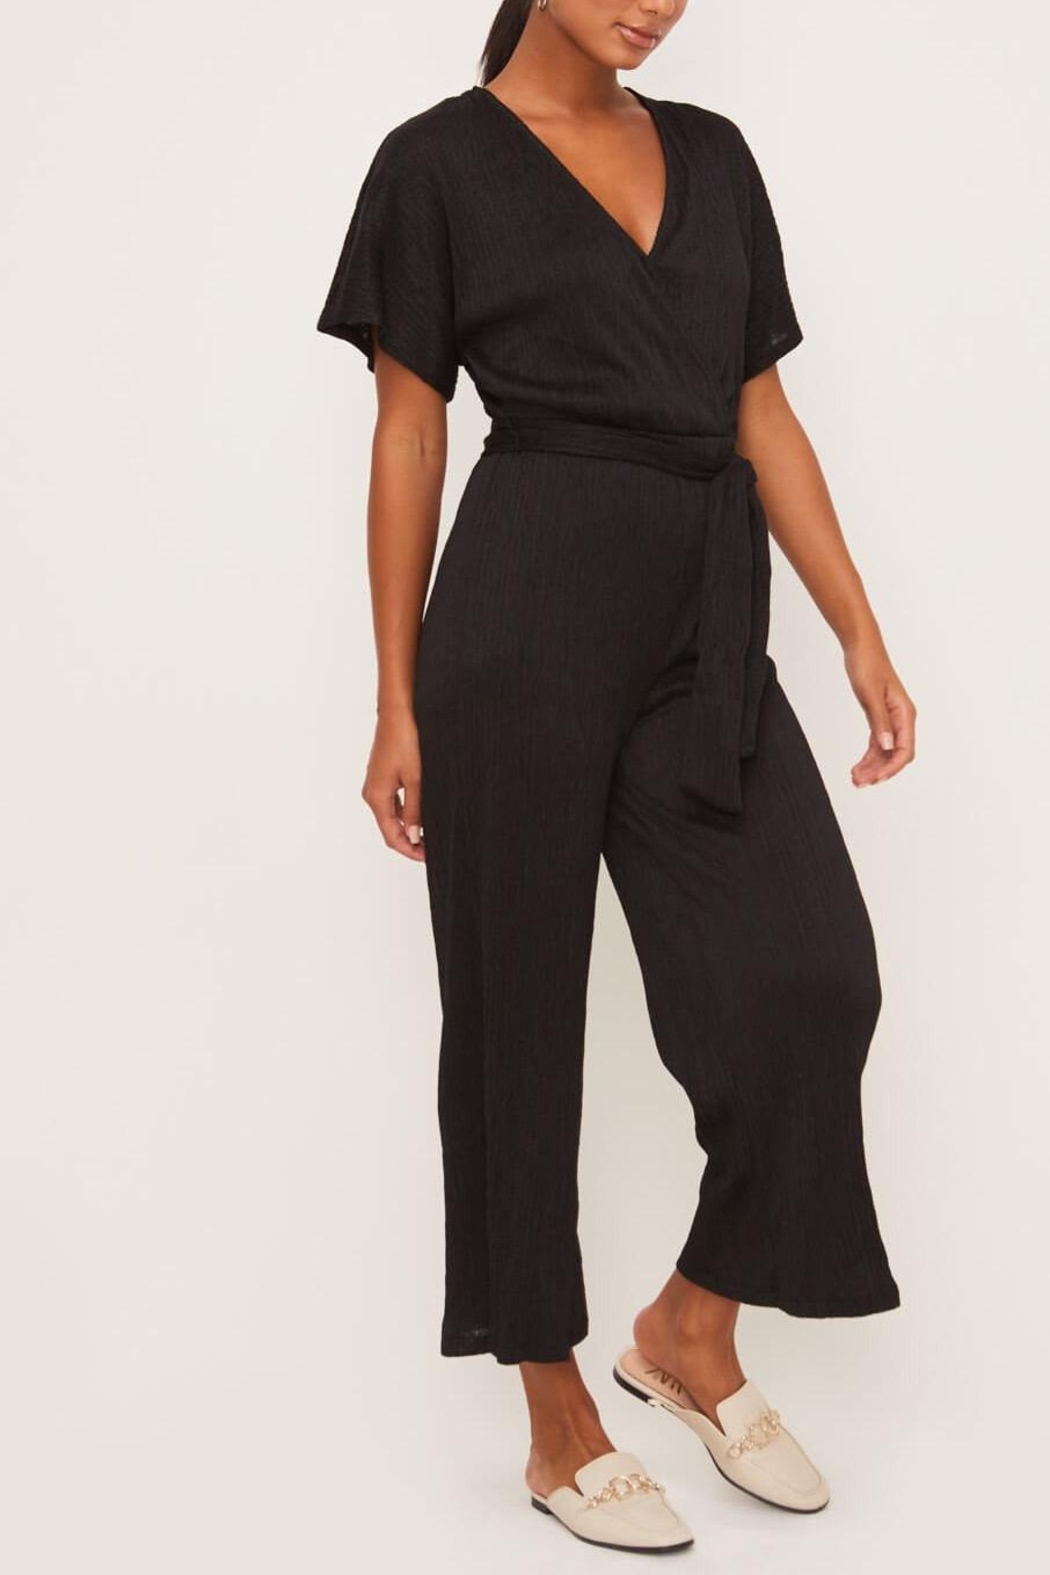 Lush Clothing  Wrap-Front Dolman Jumpsuit - Side Cropped Image